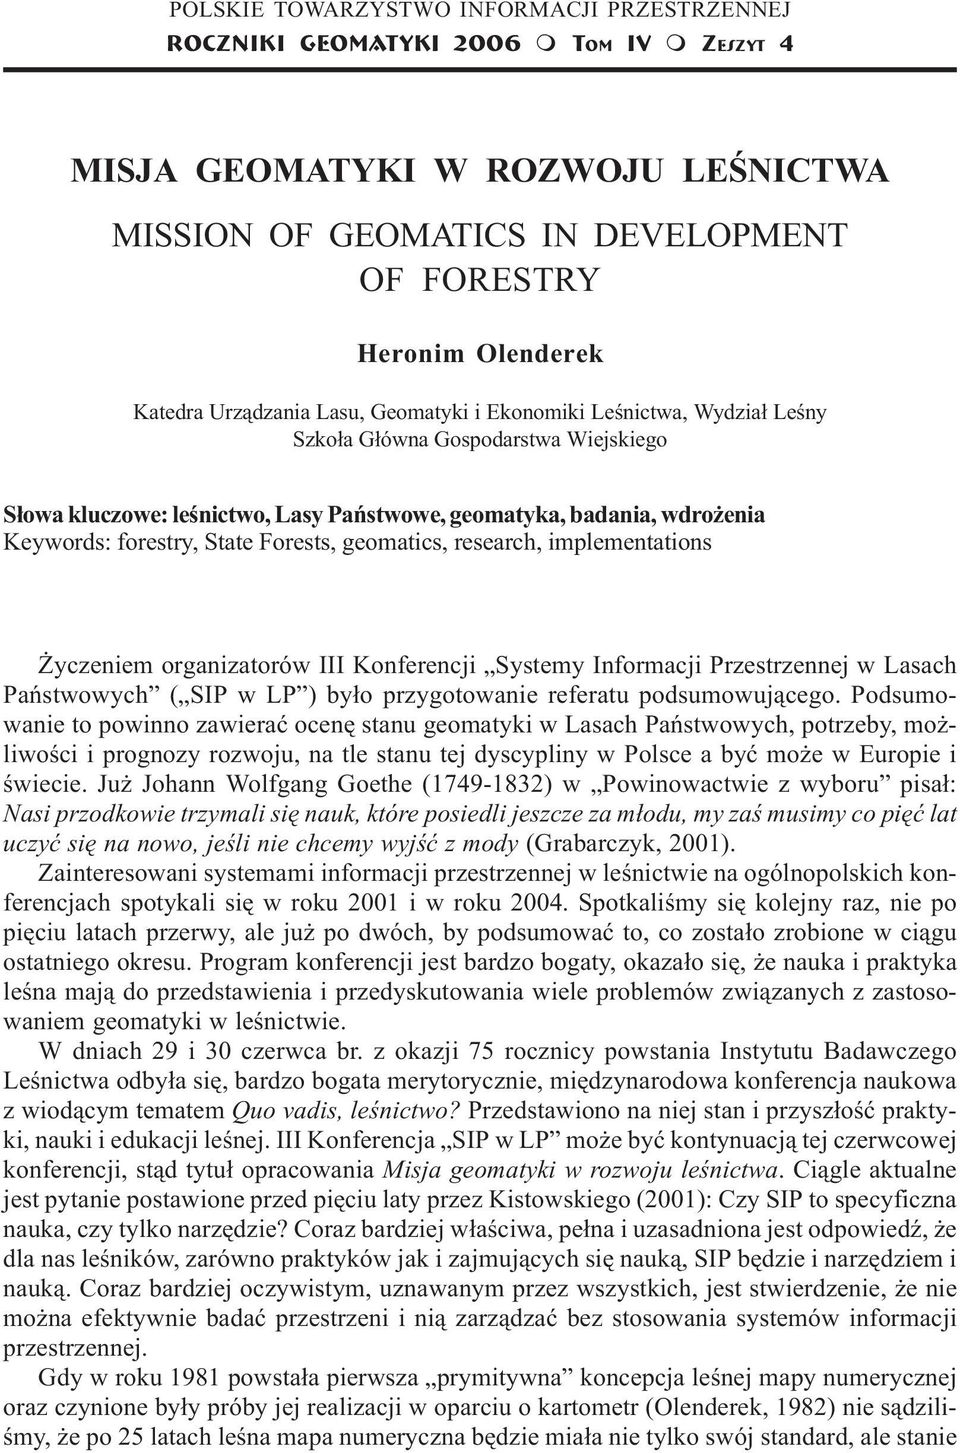 badania, wdro enia Keywords: forestry, State Forests, geomatics, research, implementations yczeniem organizatorów III Konferencji Systemy Informacji Przestrzennej w Lasach Pañstwowych ( SIP w LP )